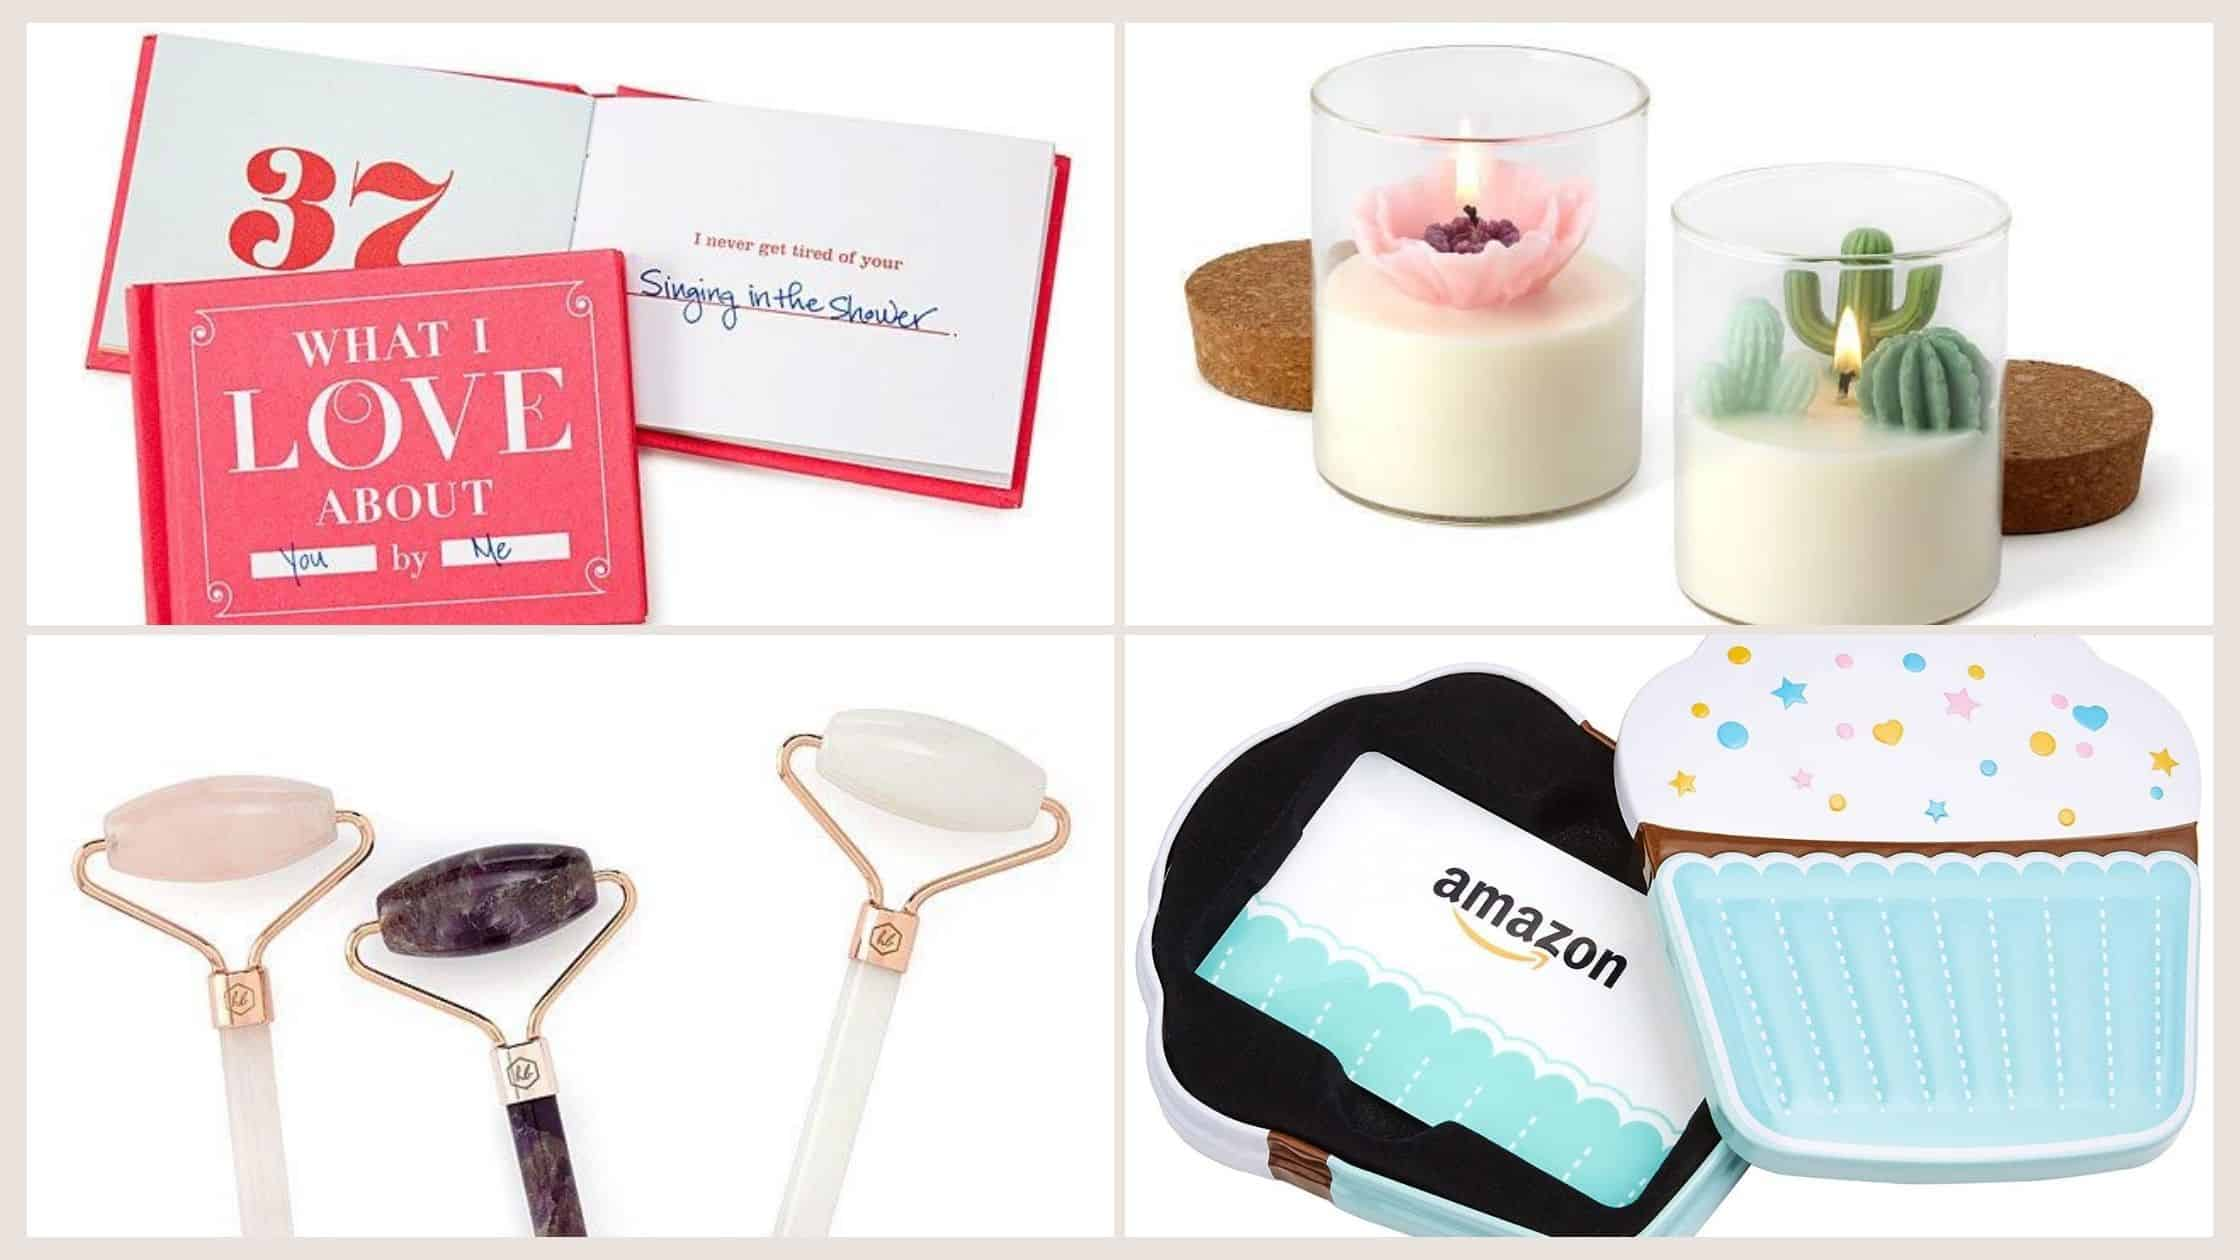 65 Unique Gifts For Her: The Ultimate Gift Guide for Women (2020)